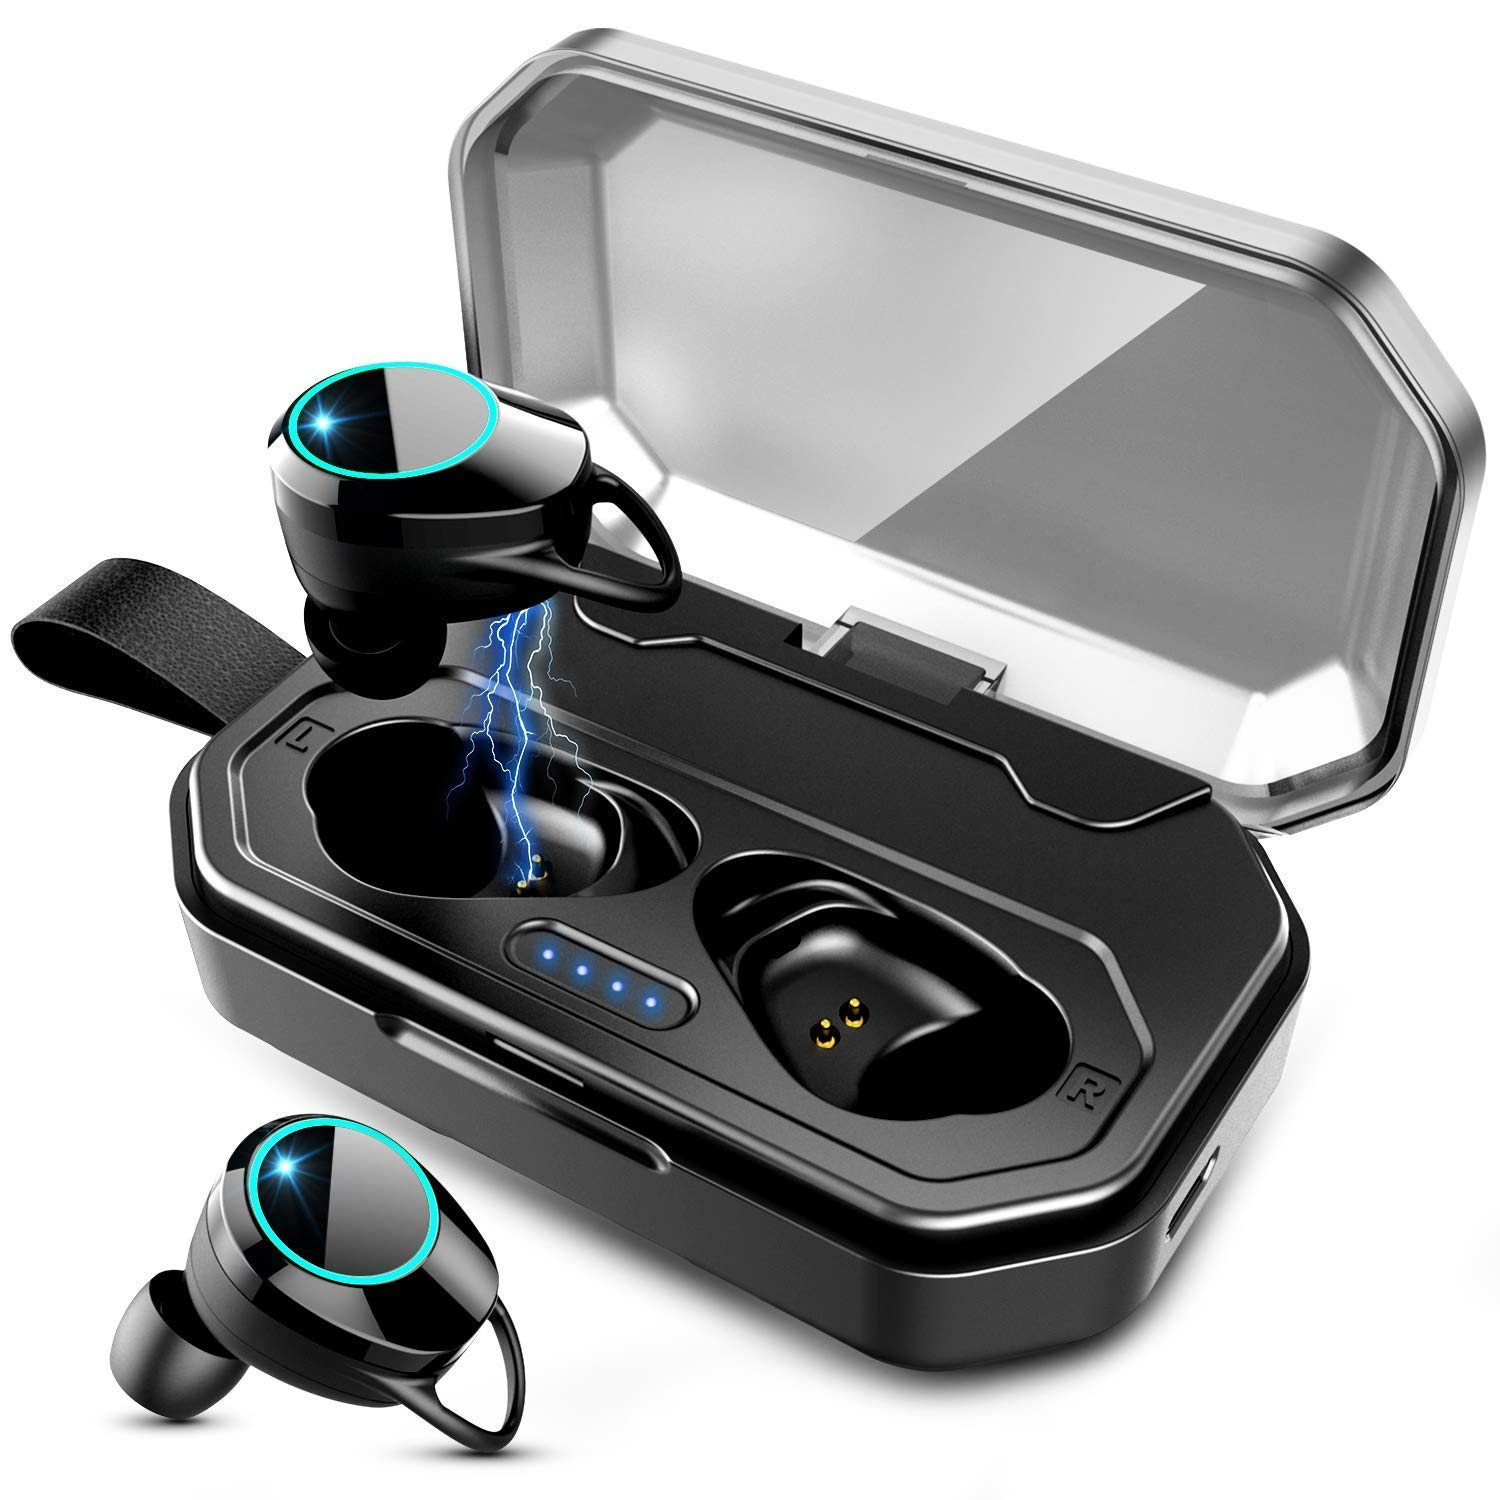 Bluetooth 5.0 TWS Wireless Earbuds, IPX7 Waterproof Headphones in-Ear Earphones, Built-in Mic Stereo Headset Premium Sound with Deep Bass for Sport